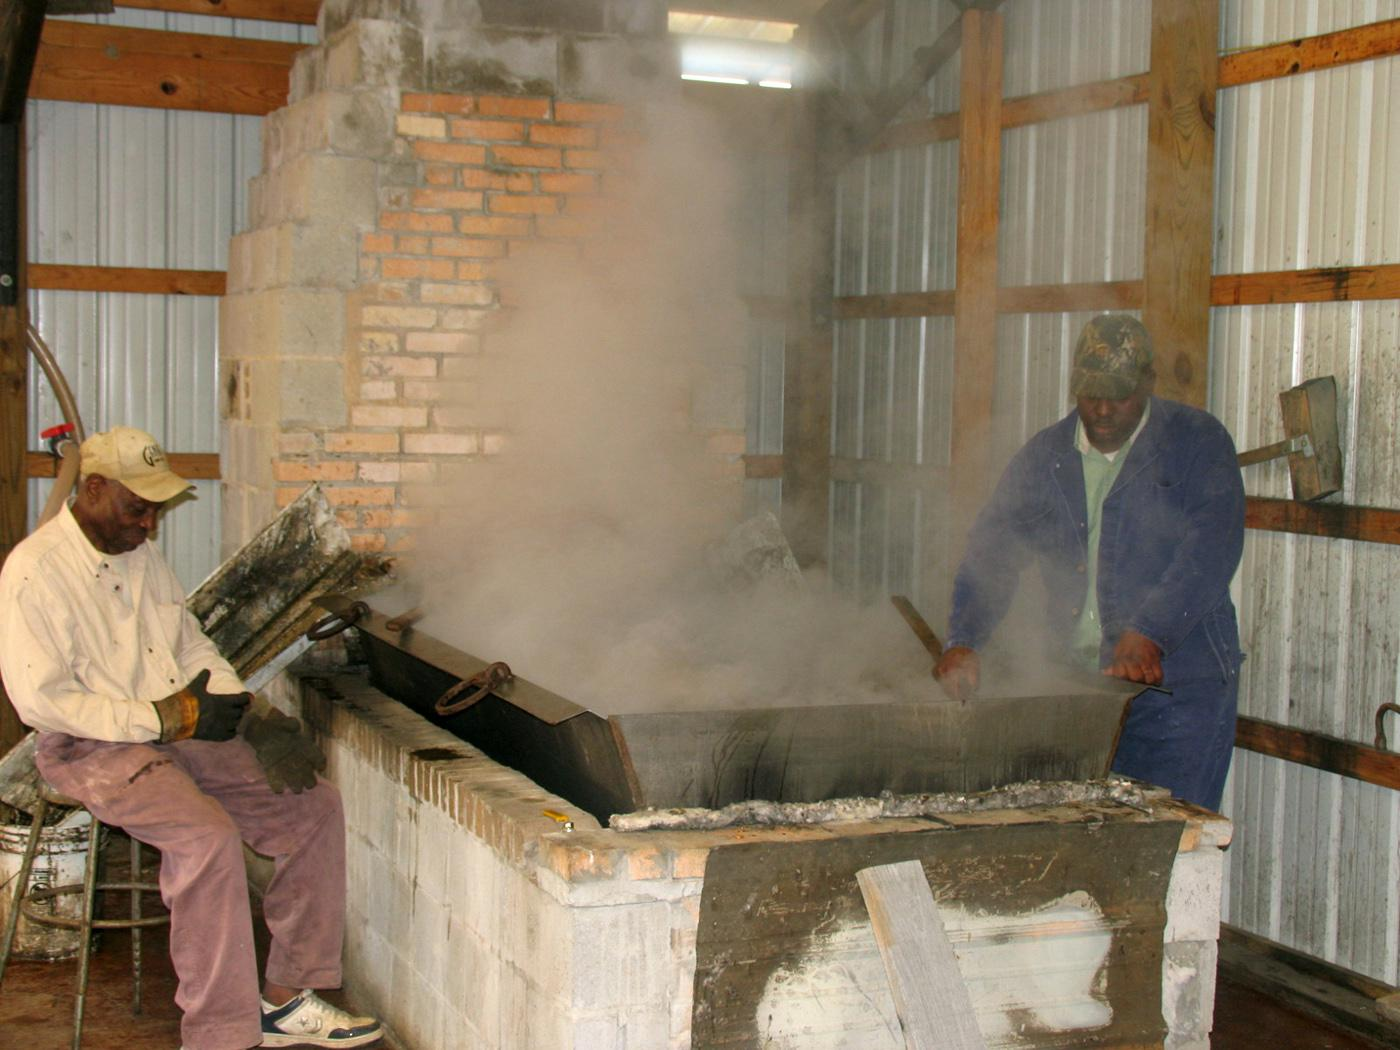 Hosea Brown, right, cooks down sugar cane syrup to molasses the old-fashioned way over a wood fire in his family business in Jefferson Davis County. Family friend Joe Norwood helps with the work at My Paw Paw's Ole Fashion Molasses in New Hebron. (Photo by Prentiss Headlight/Shirley Burnham)